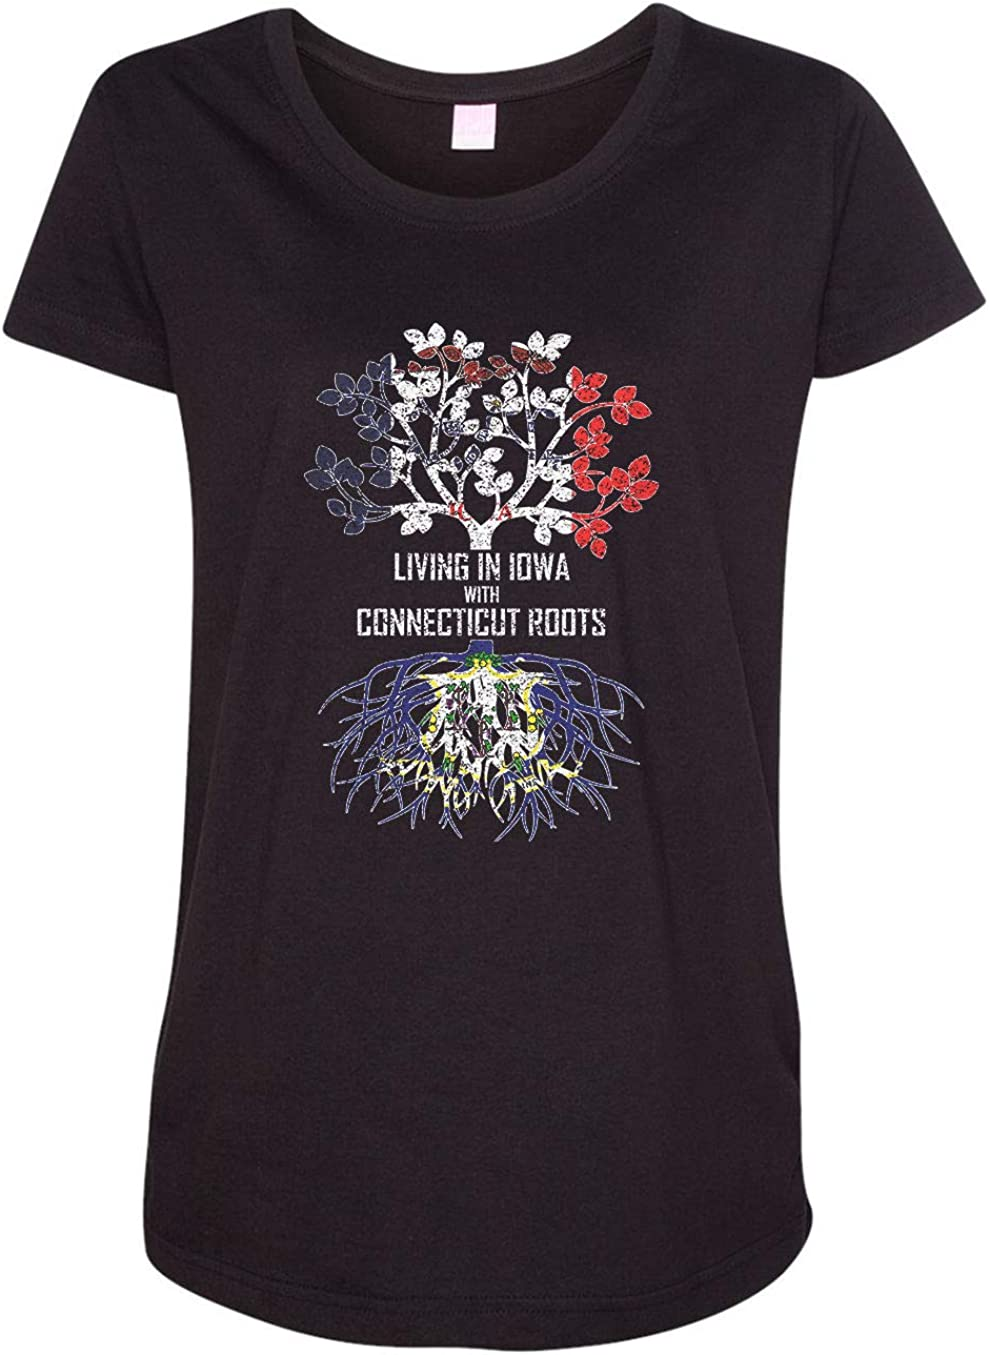 HARD EDGE DESIGN Women's Living in Iowa with Connecticut Roots T-Shirt